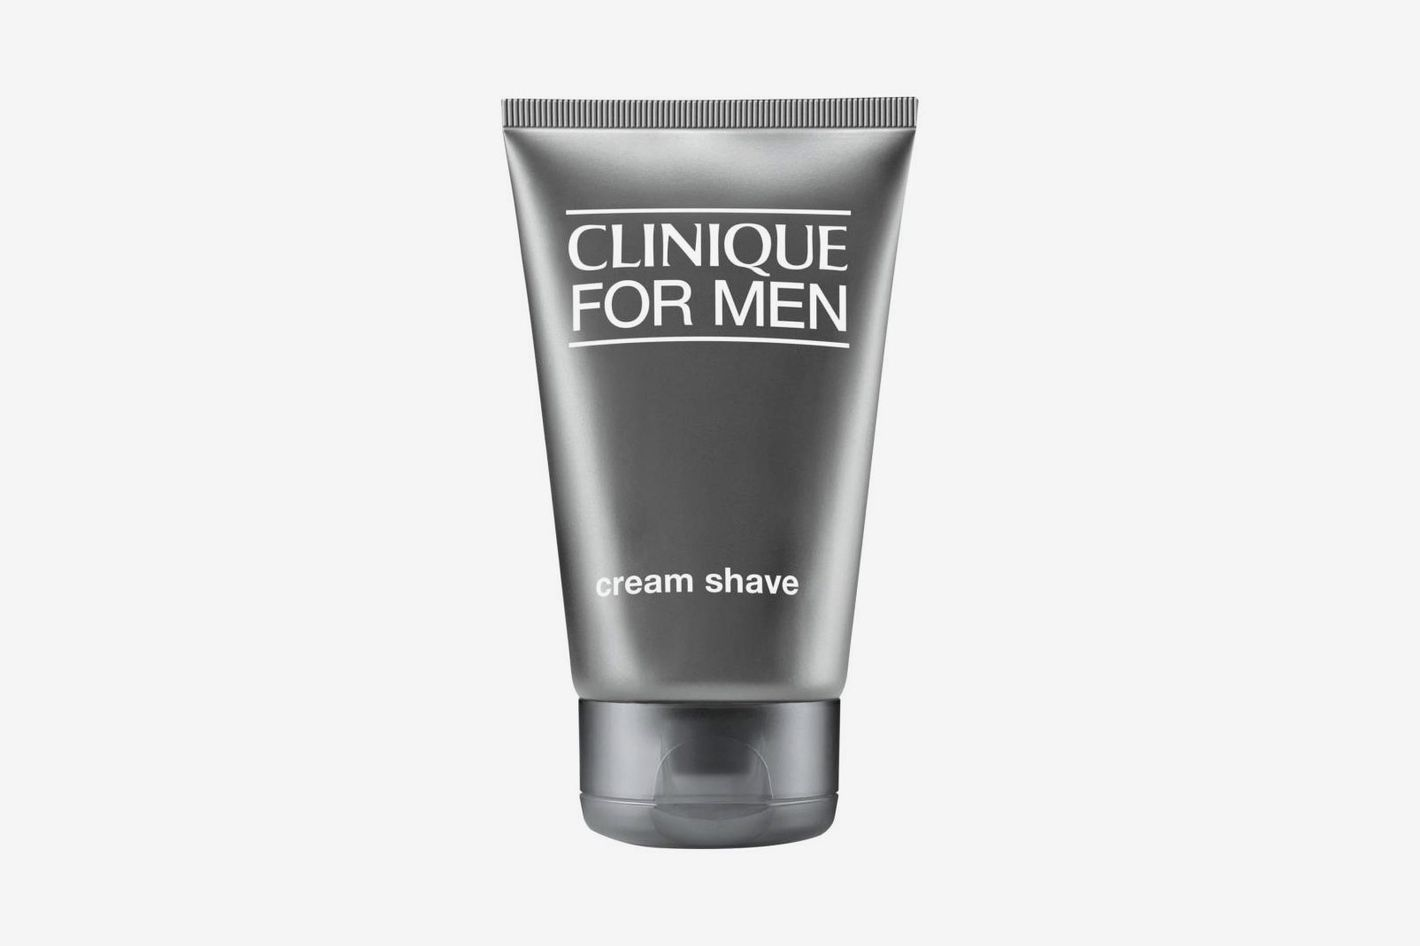 Clinique cream shave